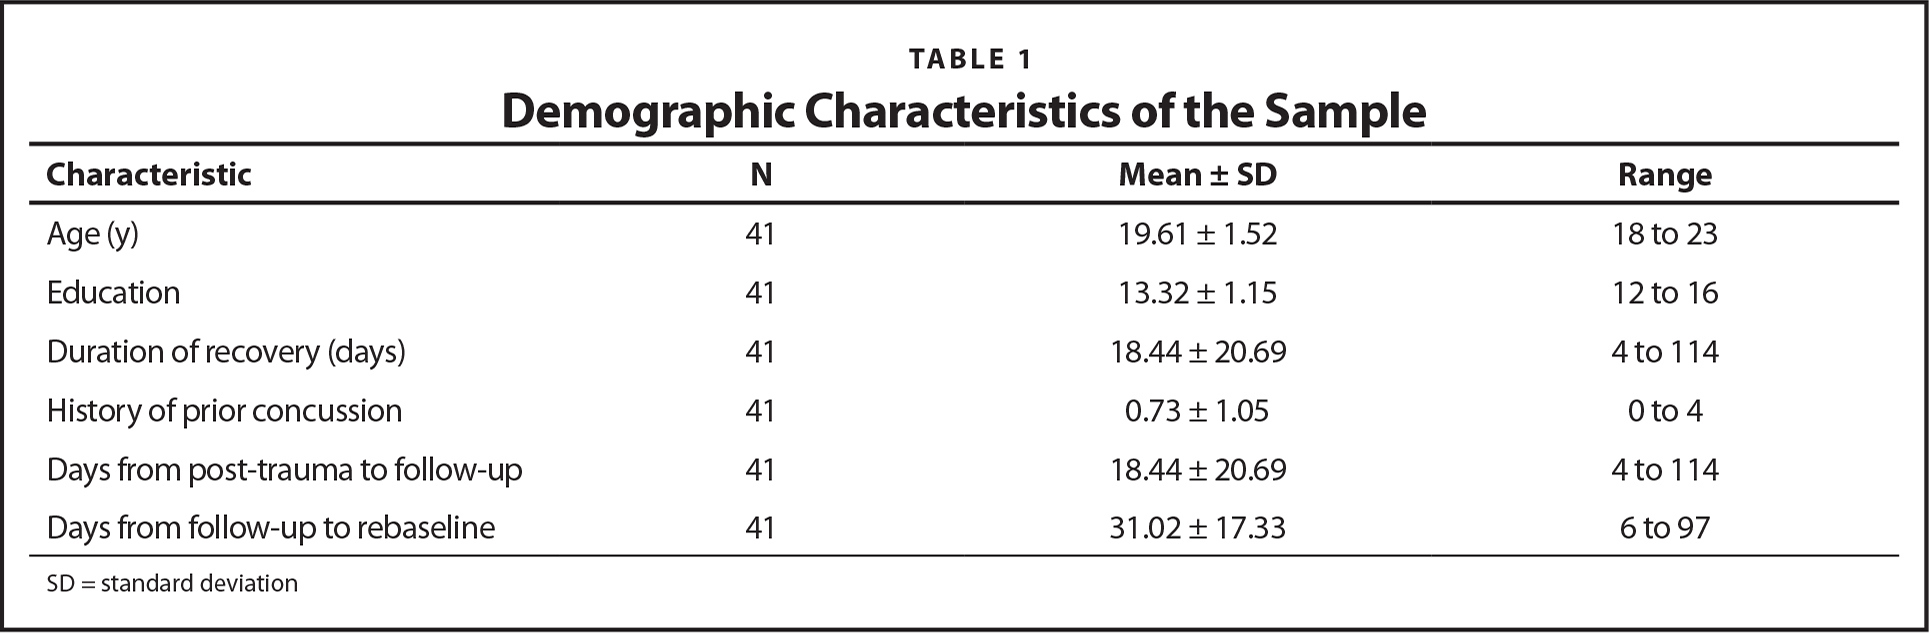 Demographic Characteristics of the Sample